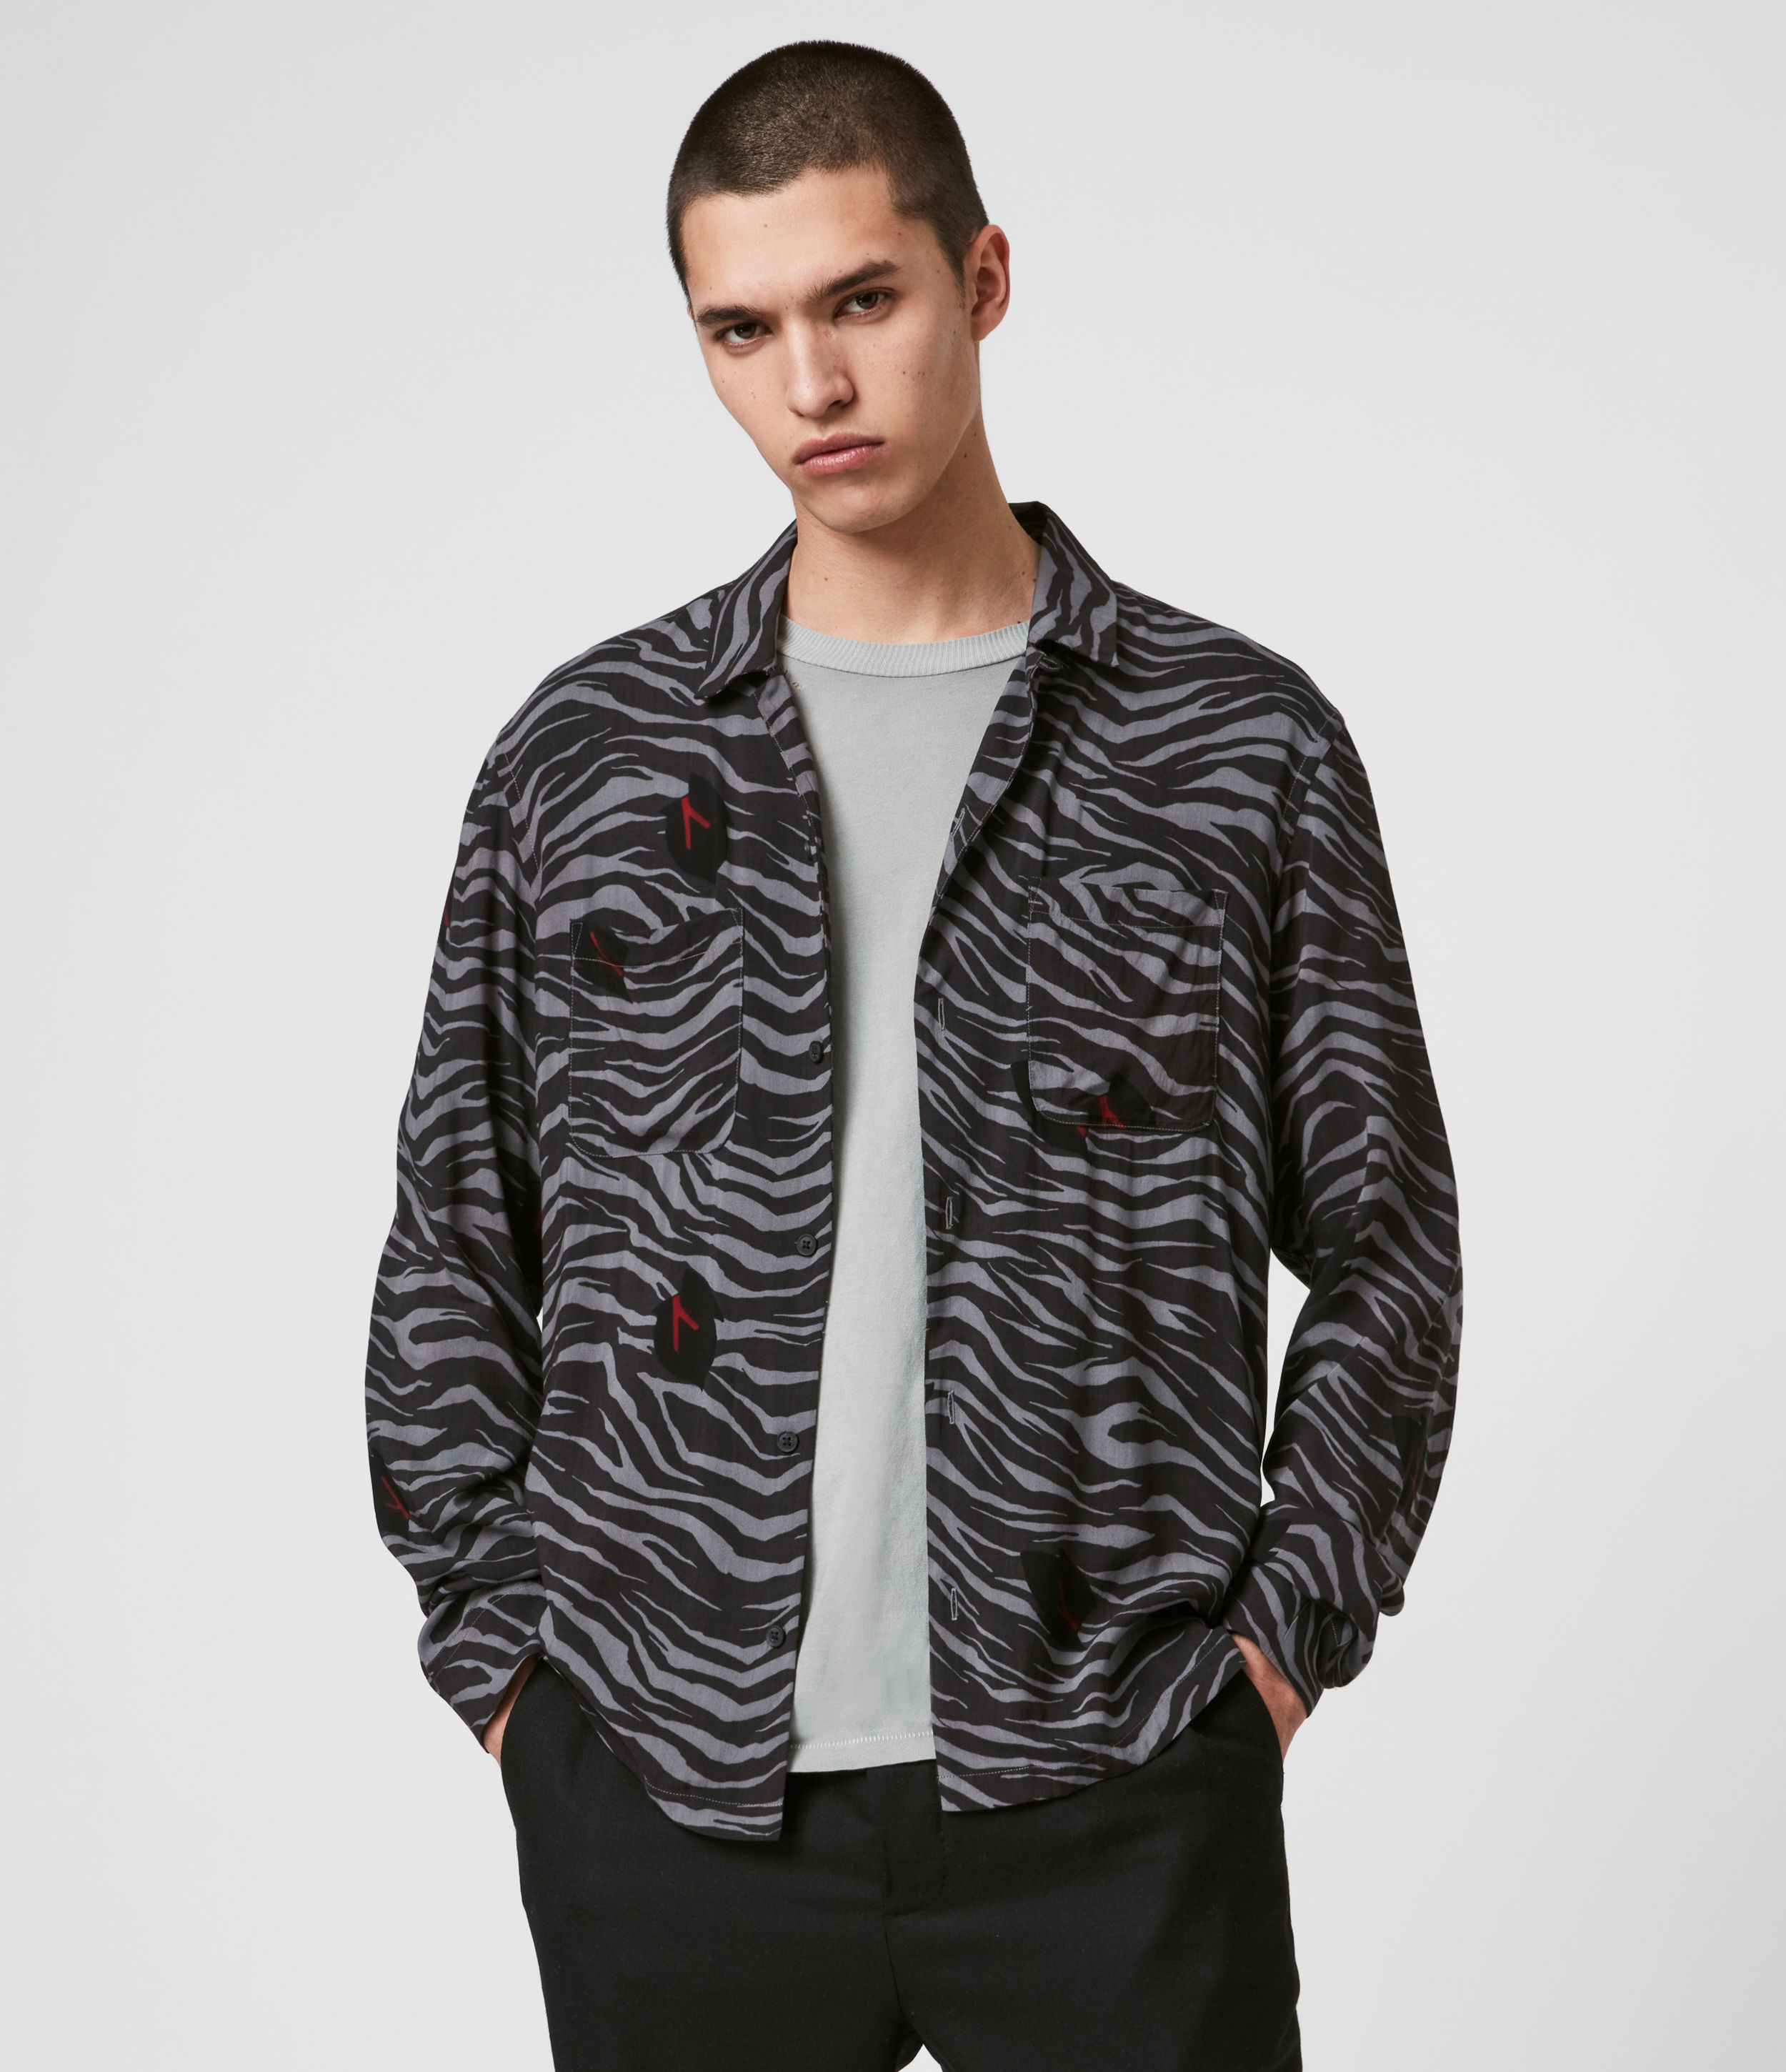 AllSaints Men's All-Over Tiger Stripe Lightweight Lazaro Long Sleeve Shirt, Grey and Black, Size: M